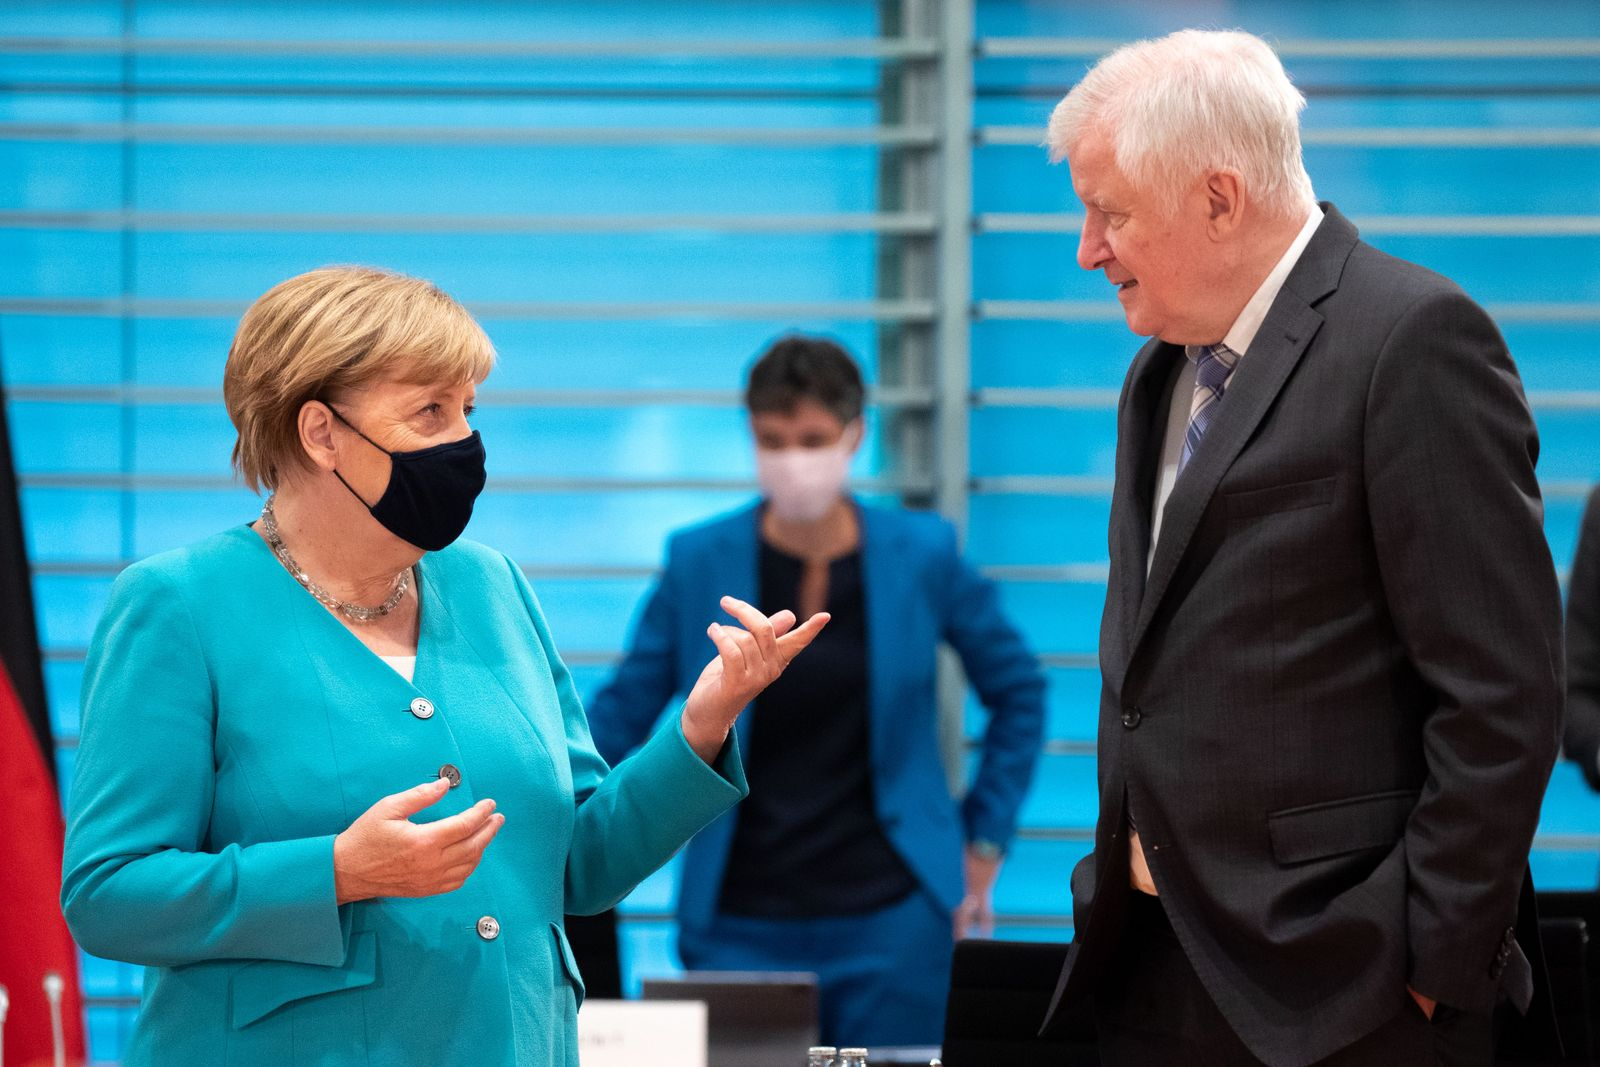 German cabinet committee on Combating Right-Wing Extremism and Racism, Berlin, Germany - 02 Sep 2020